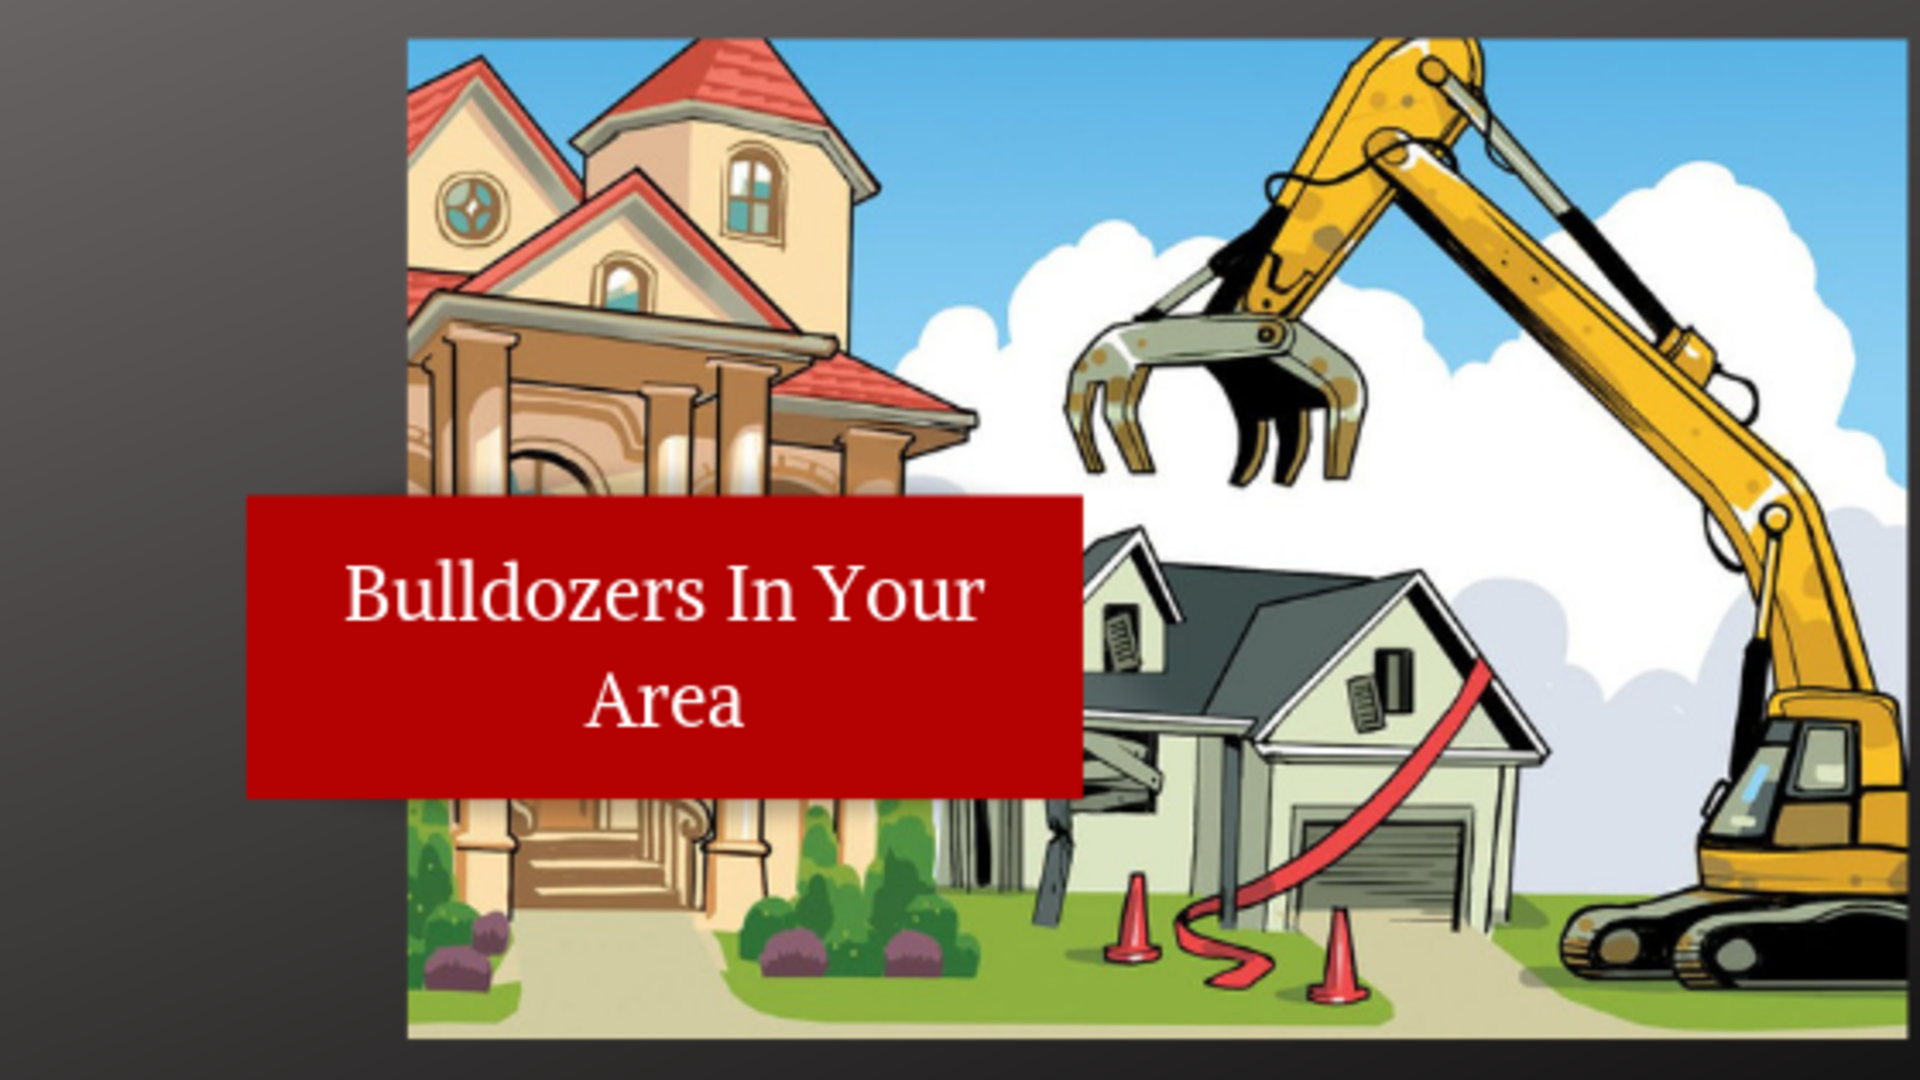 The Bulldozers Are Coming to Your Neighborhood